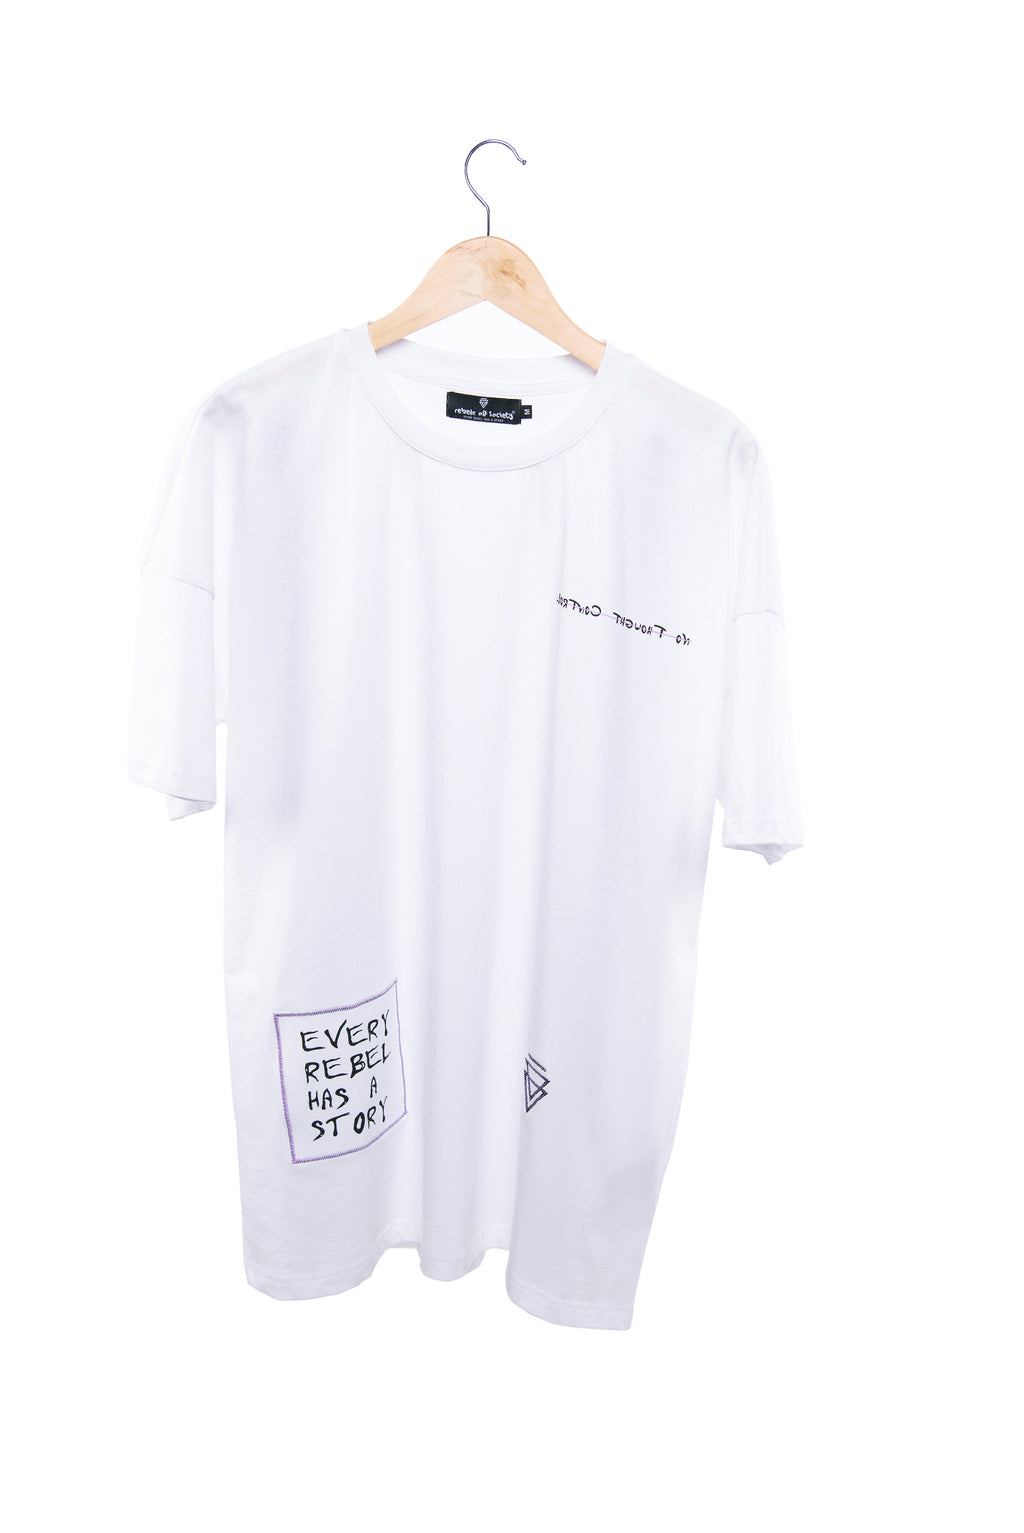 No Thought Control (WHITE)